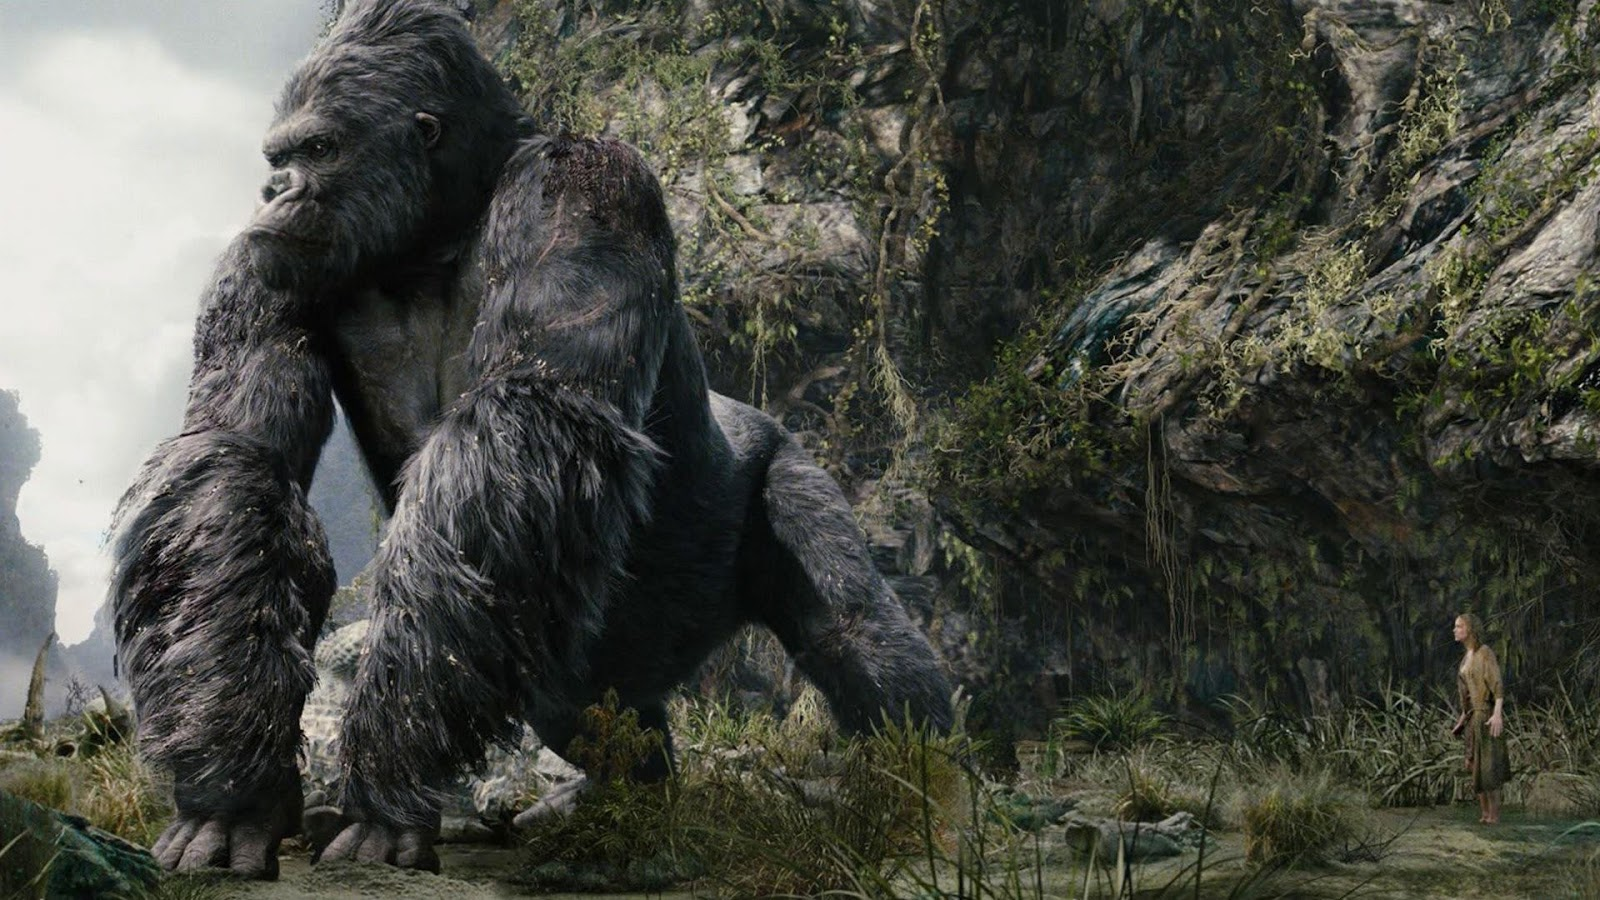 Kong and Brie Larson in Kong: Skull Island (2017)